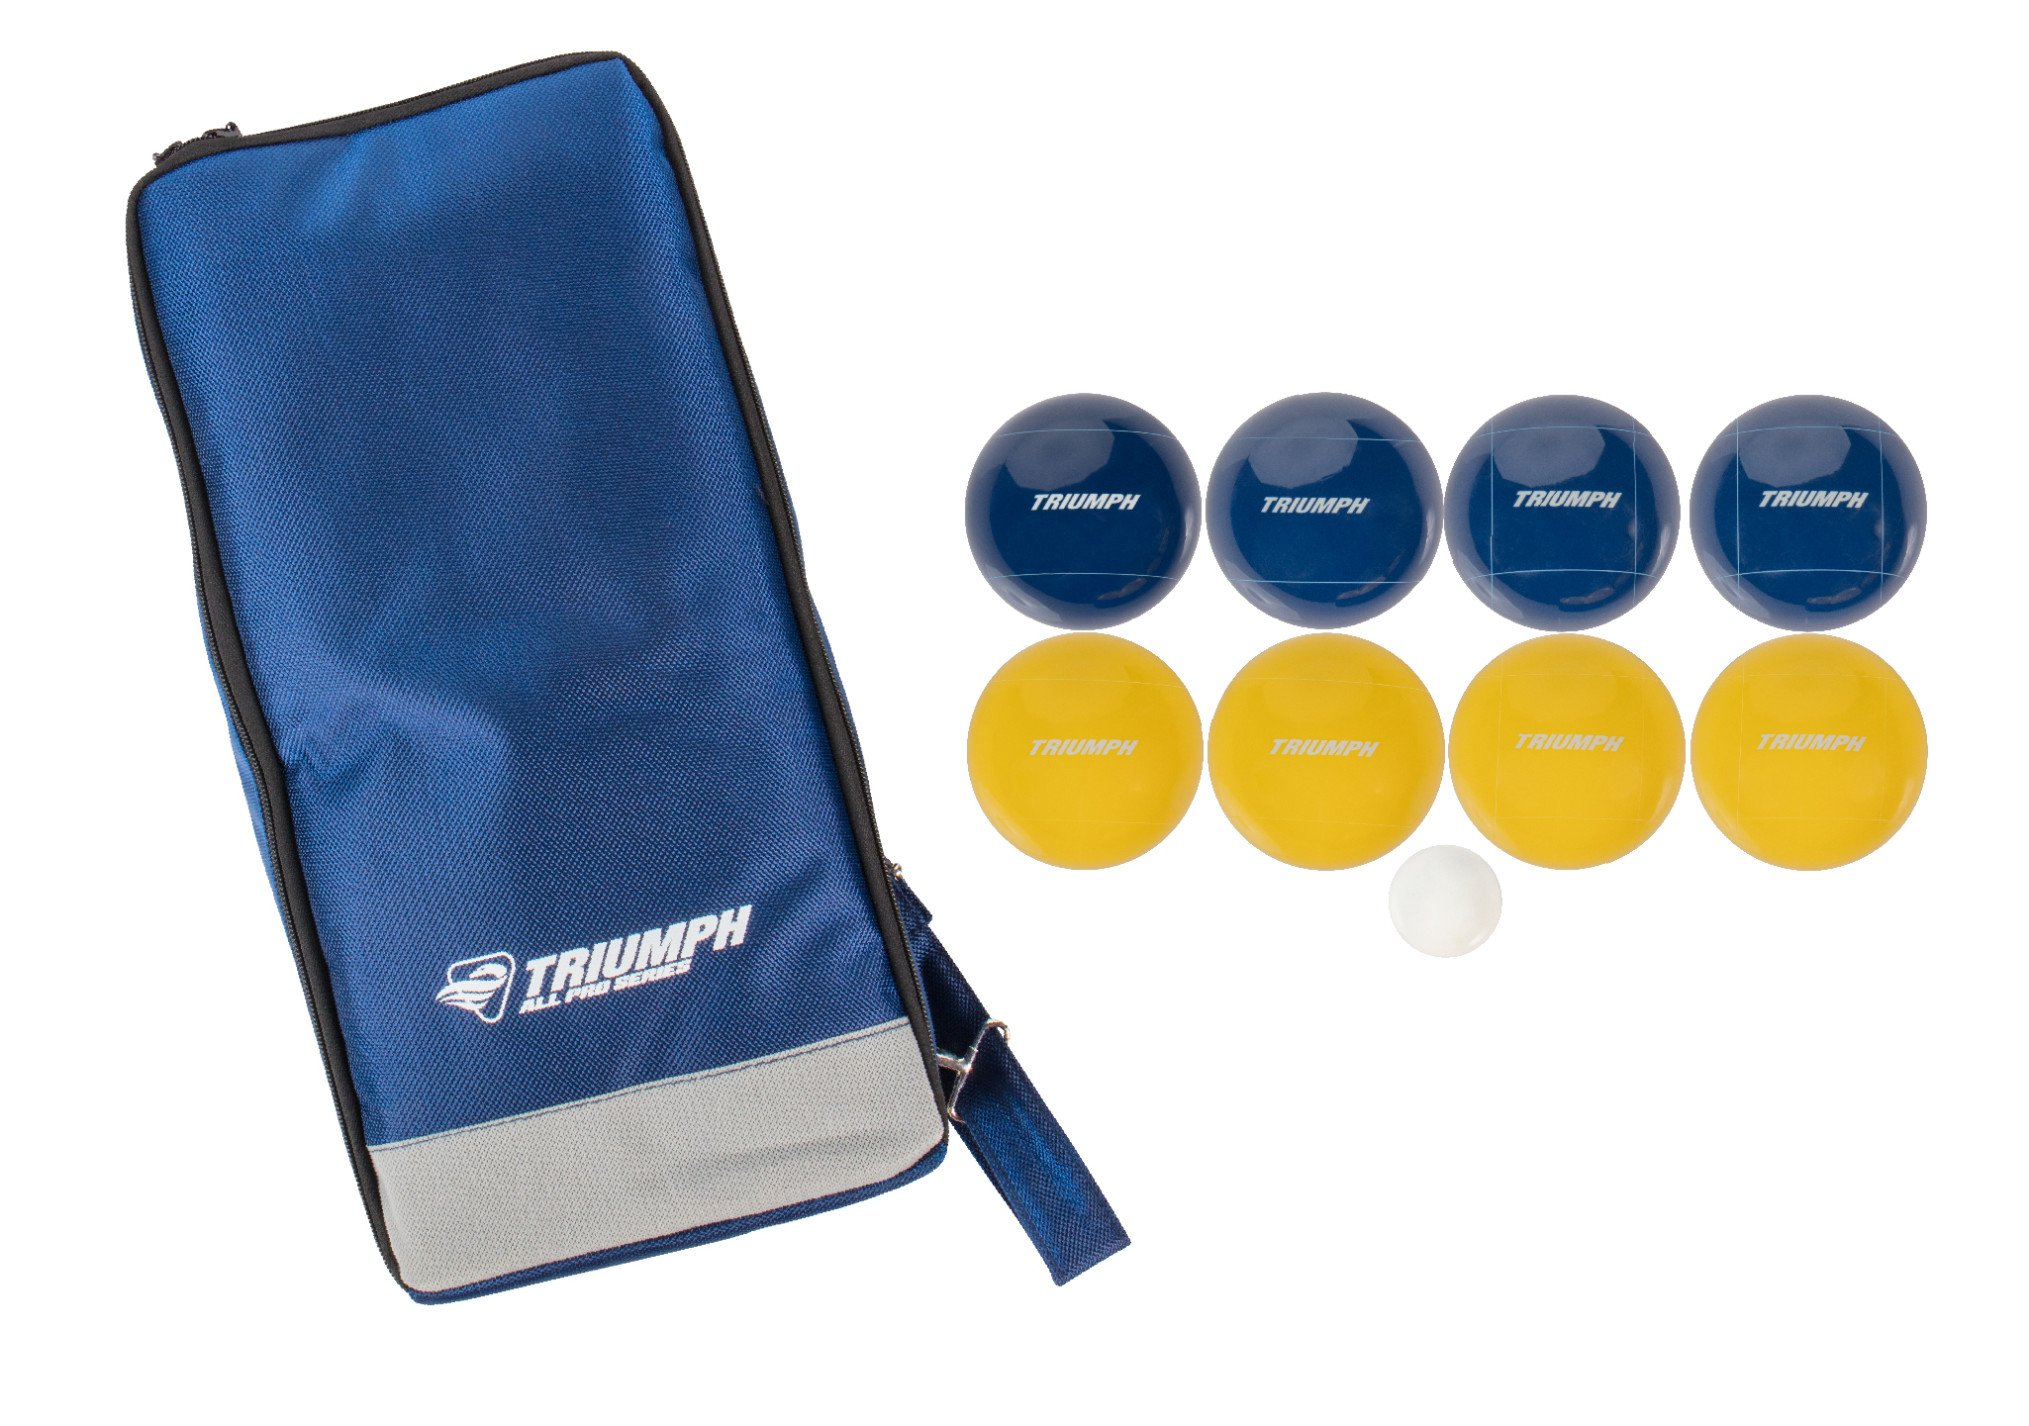 Triumph All Pro 100mm Bocce Set Includes Eight Bocce Balls, One 50mm Jack, and Carry Bag by Triumph Sports